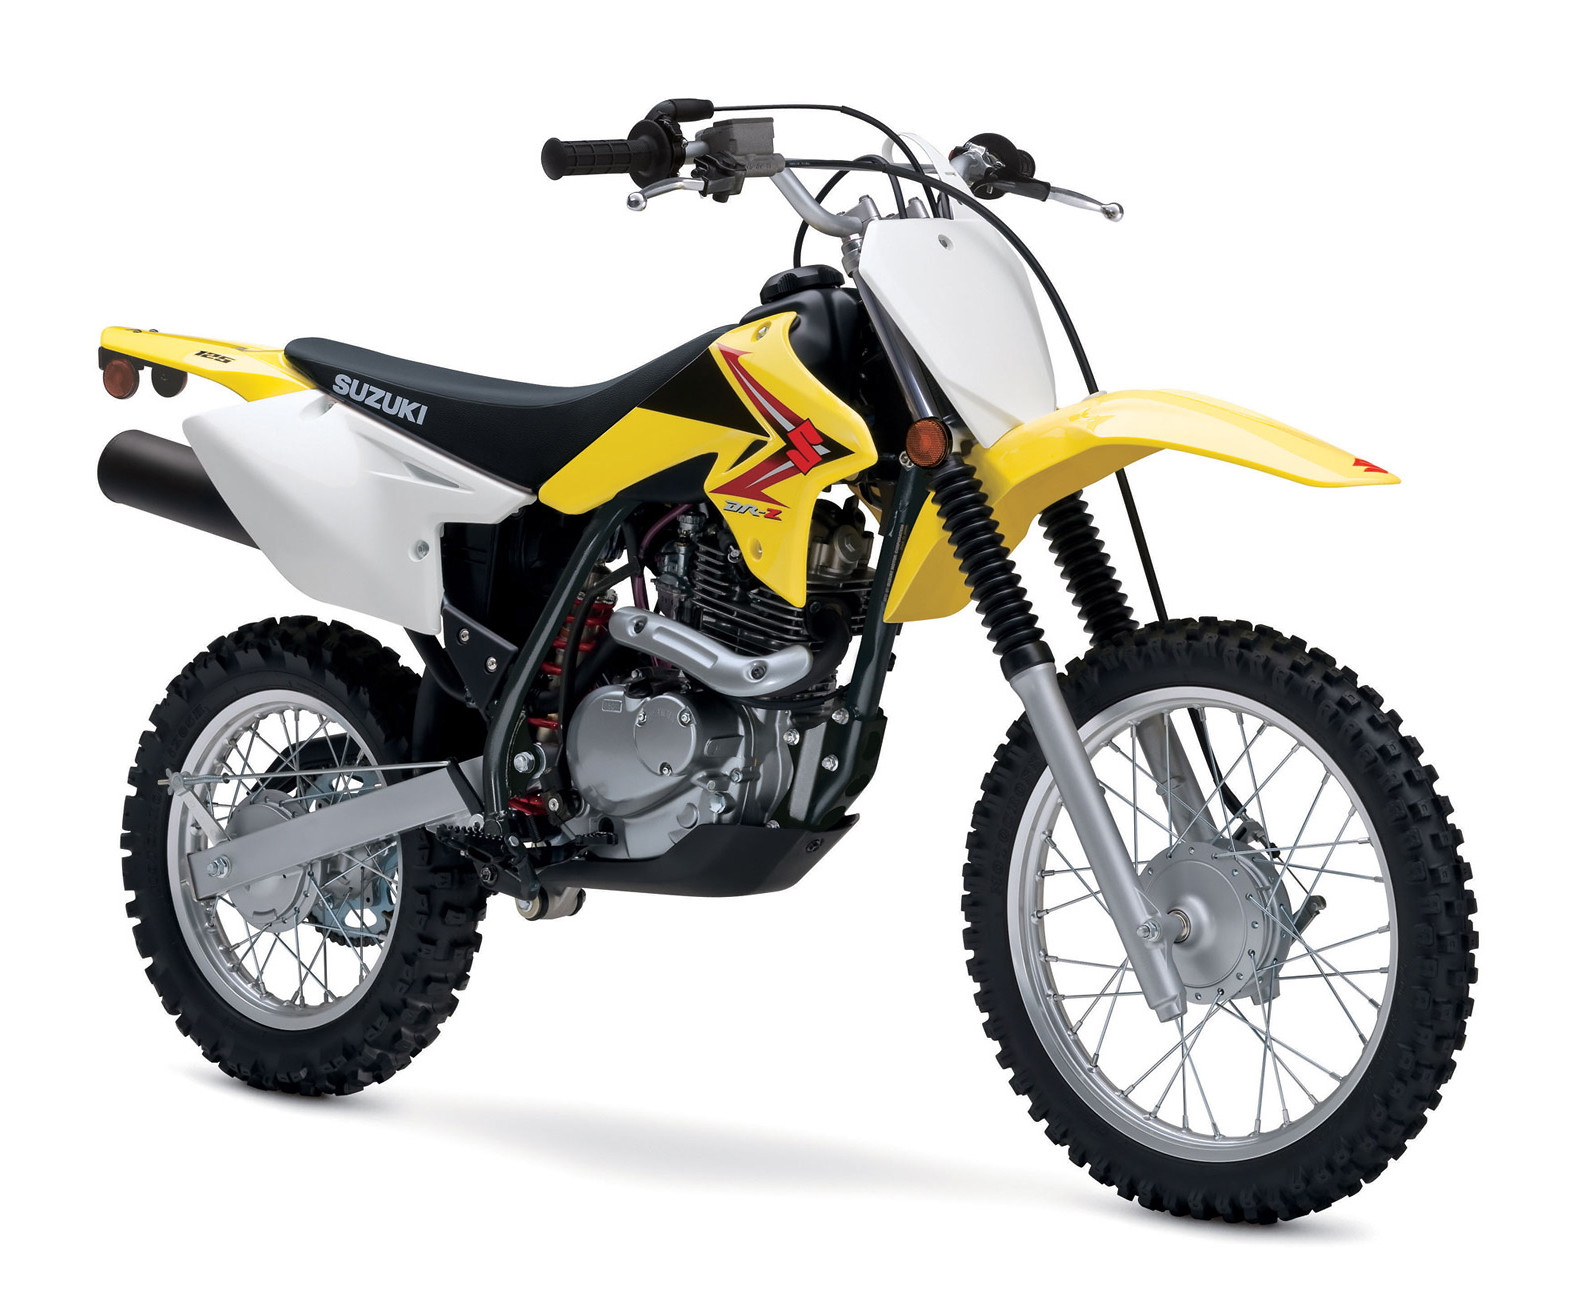 2012 suzuki dr z125l reviews comparisons specs. Black Bedroom Furniture Sets. Home Design Ideas